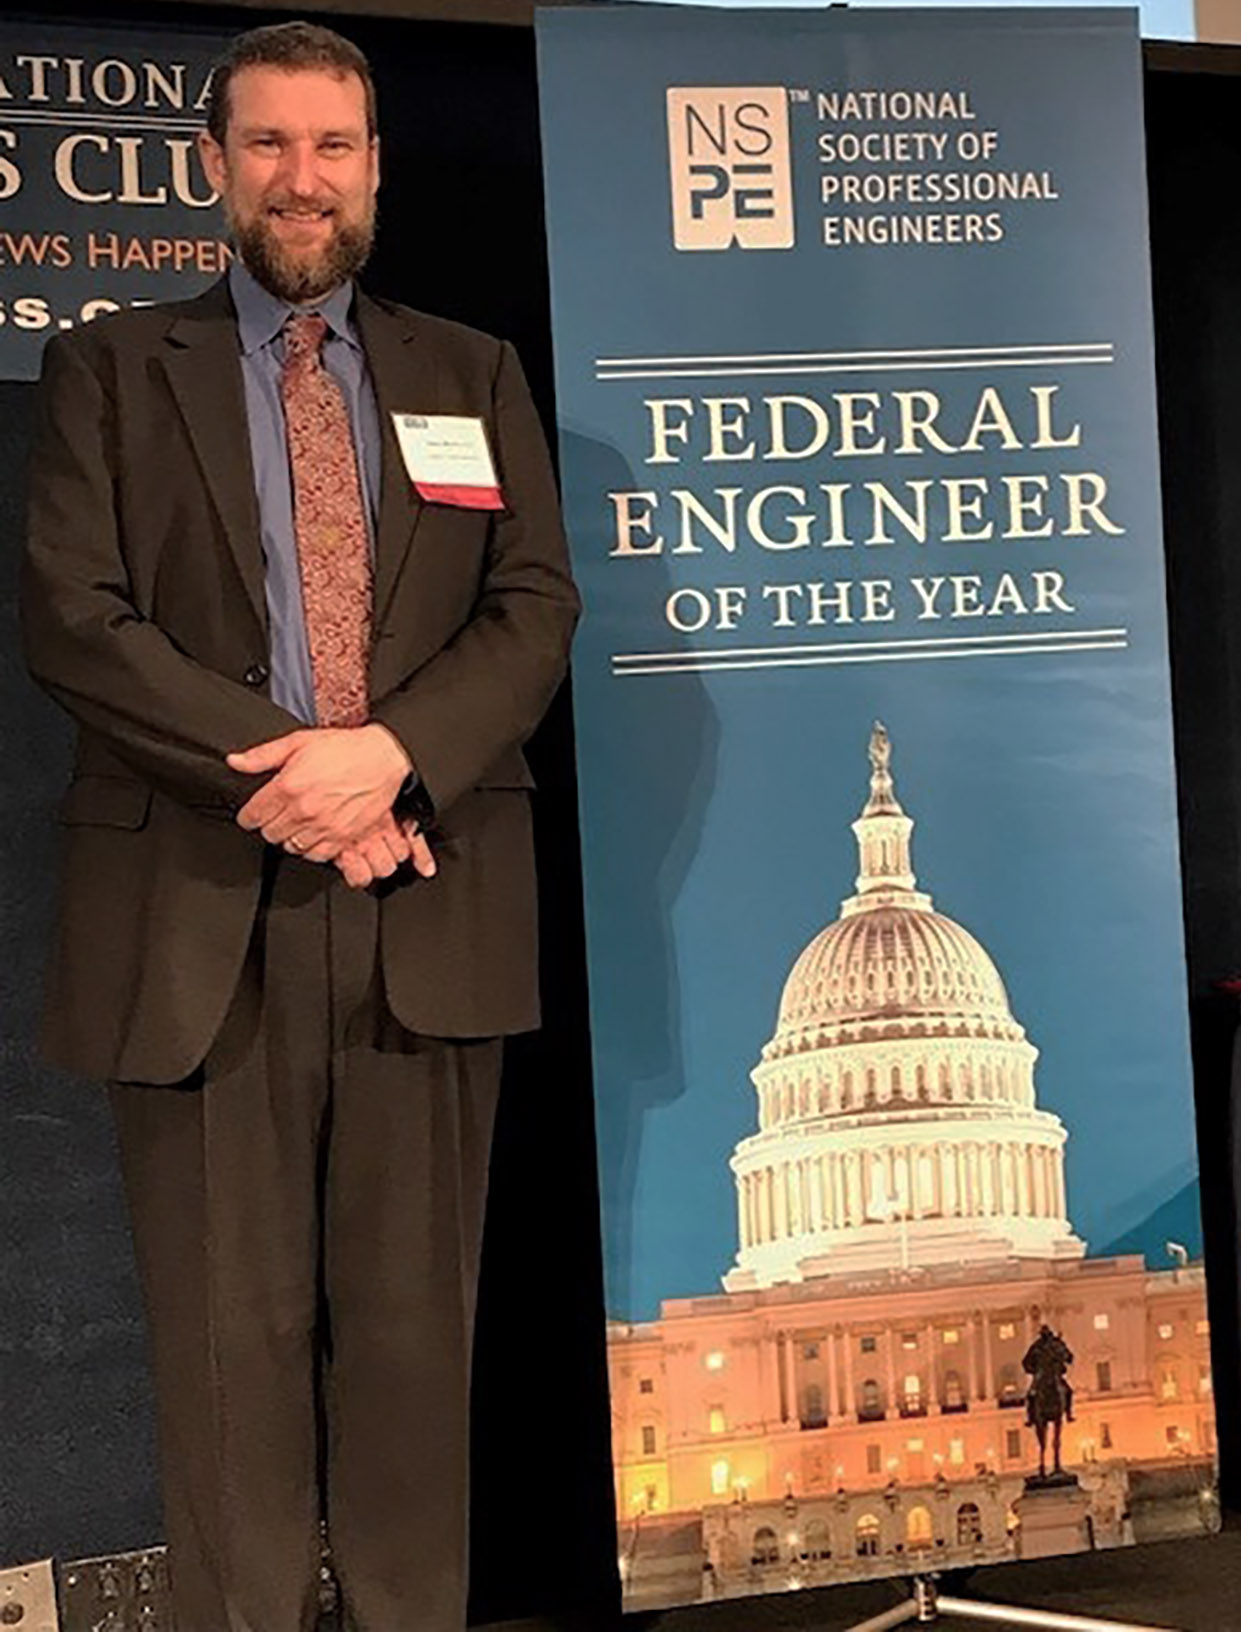 Photo: Man standing next to banner bug. Banner has image of U.S. Capitol at night below the text Federal Engineer of the Year.